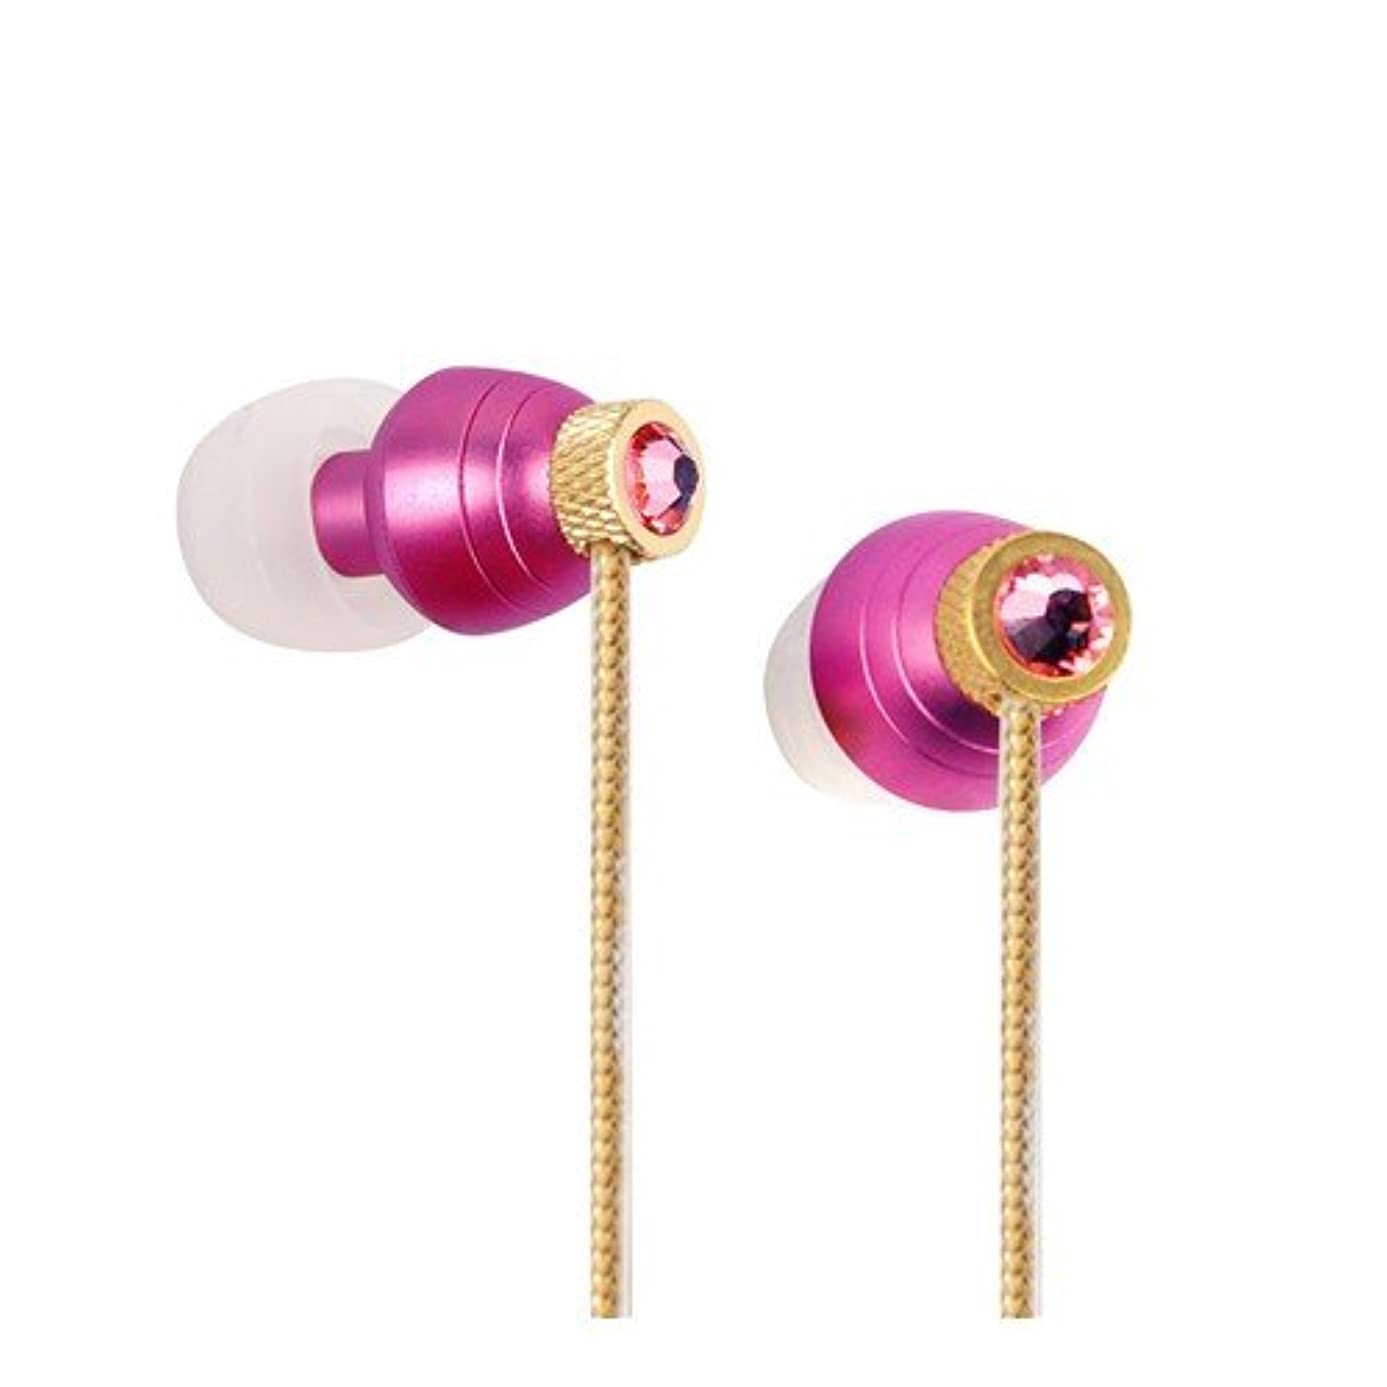 Swarvoski Crystal iBuds by G-Cube IB990R Rose color earbud Fully Faceted Xilion - Cut Swarovski Element, Enhanced Bass driven sound 10MM speaker, with Green Oxygen free Copper and Tangle free cable IB-990R